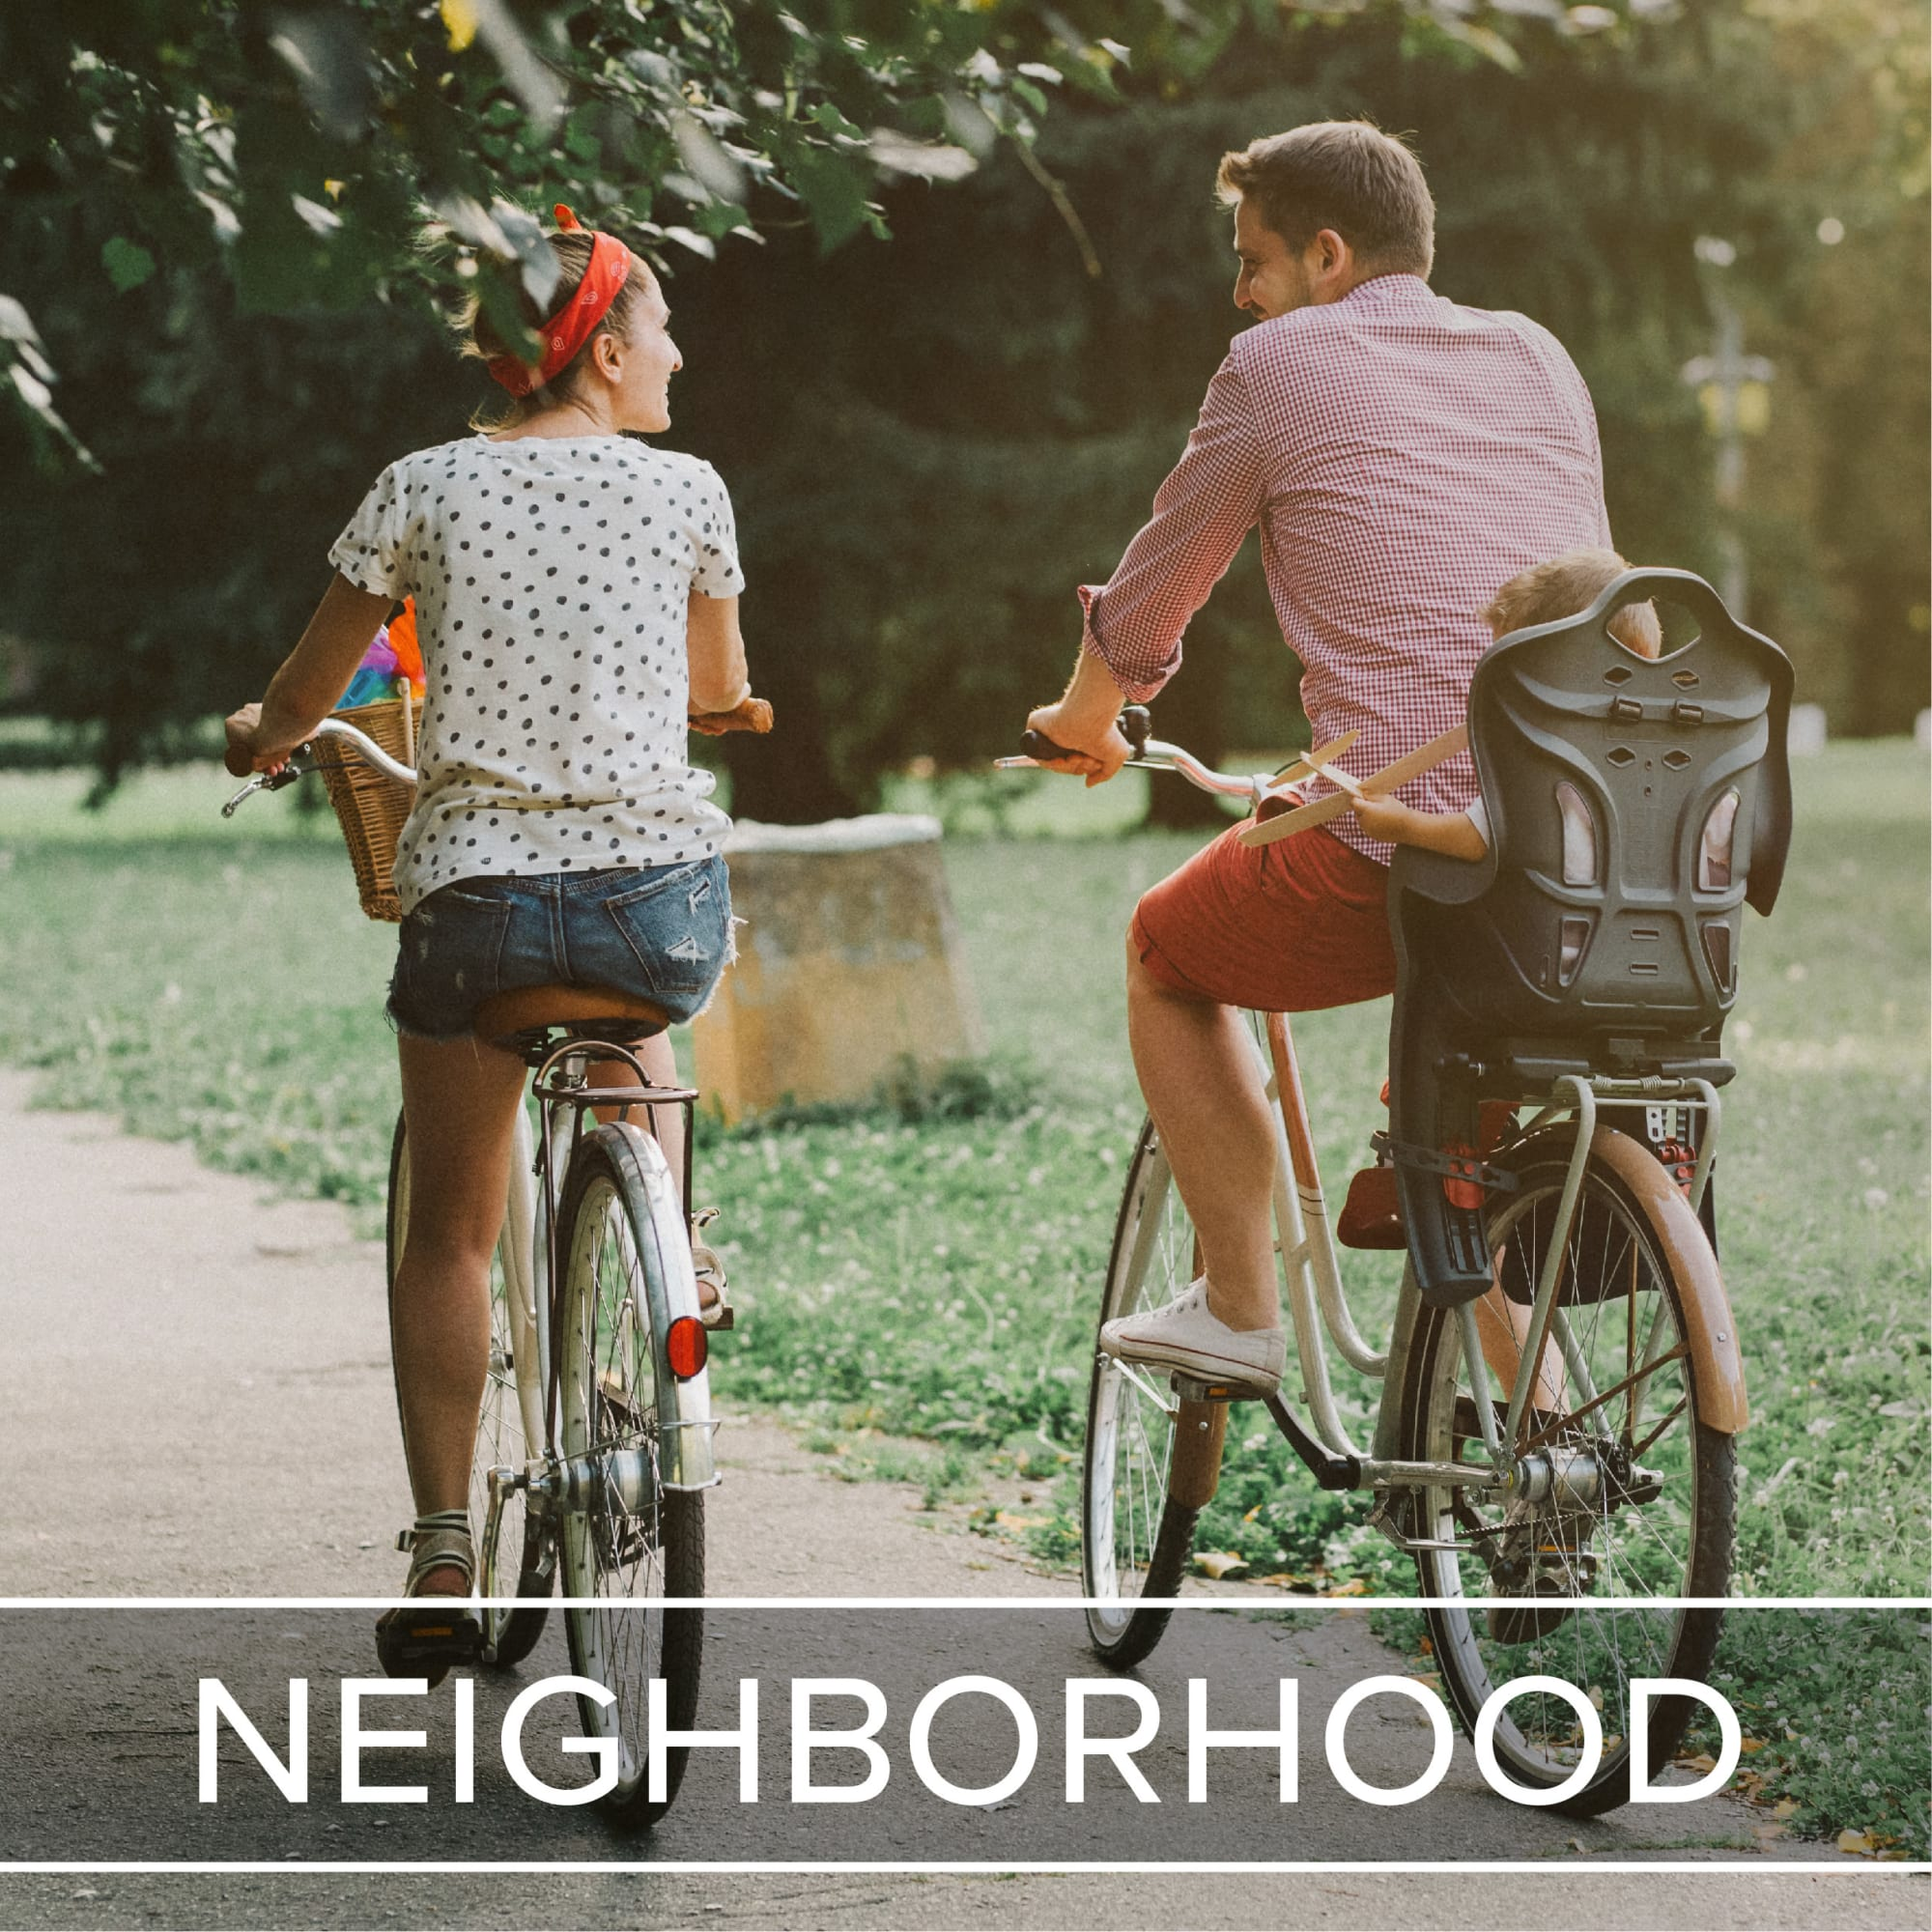 Learn more about the neighborhood at IMT Kingwood in Kingwood, Texas